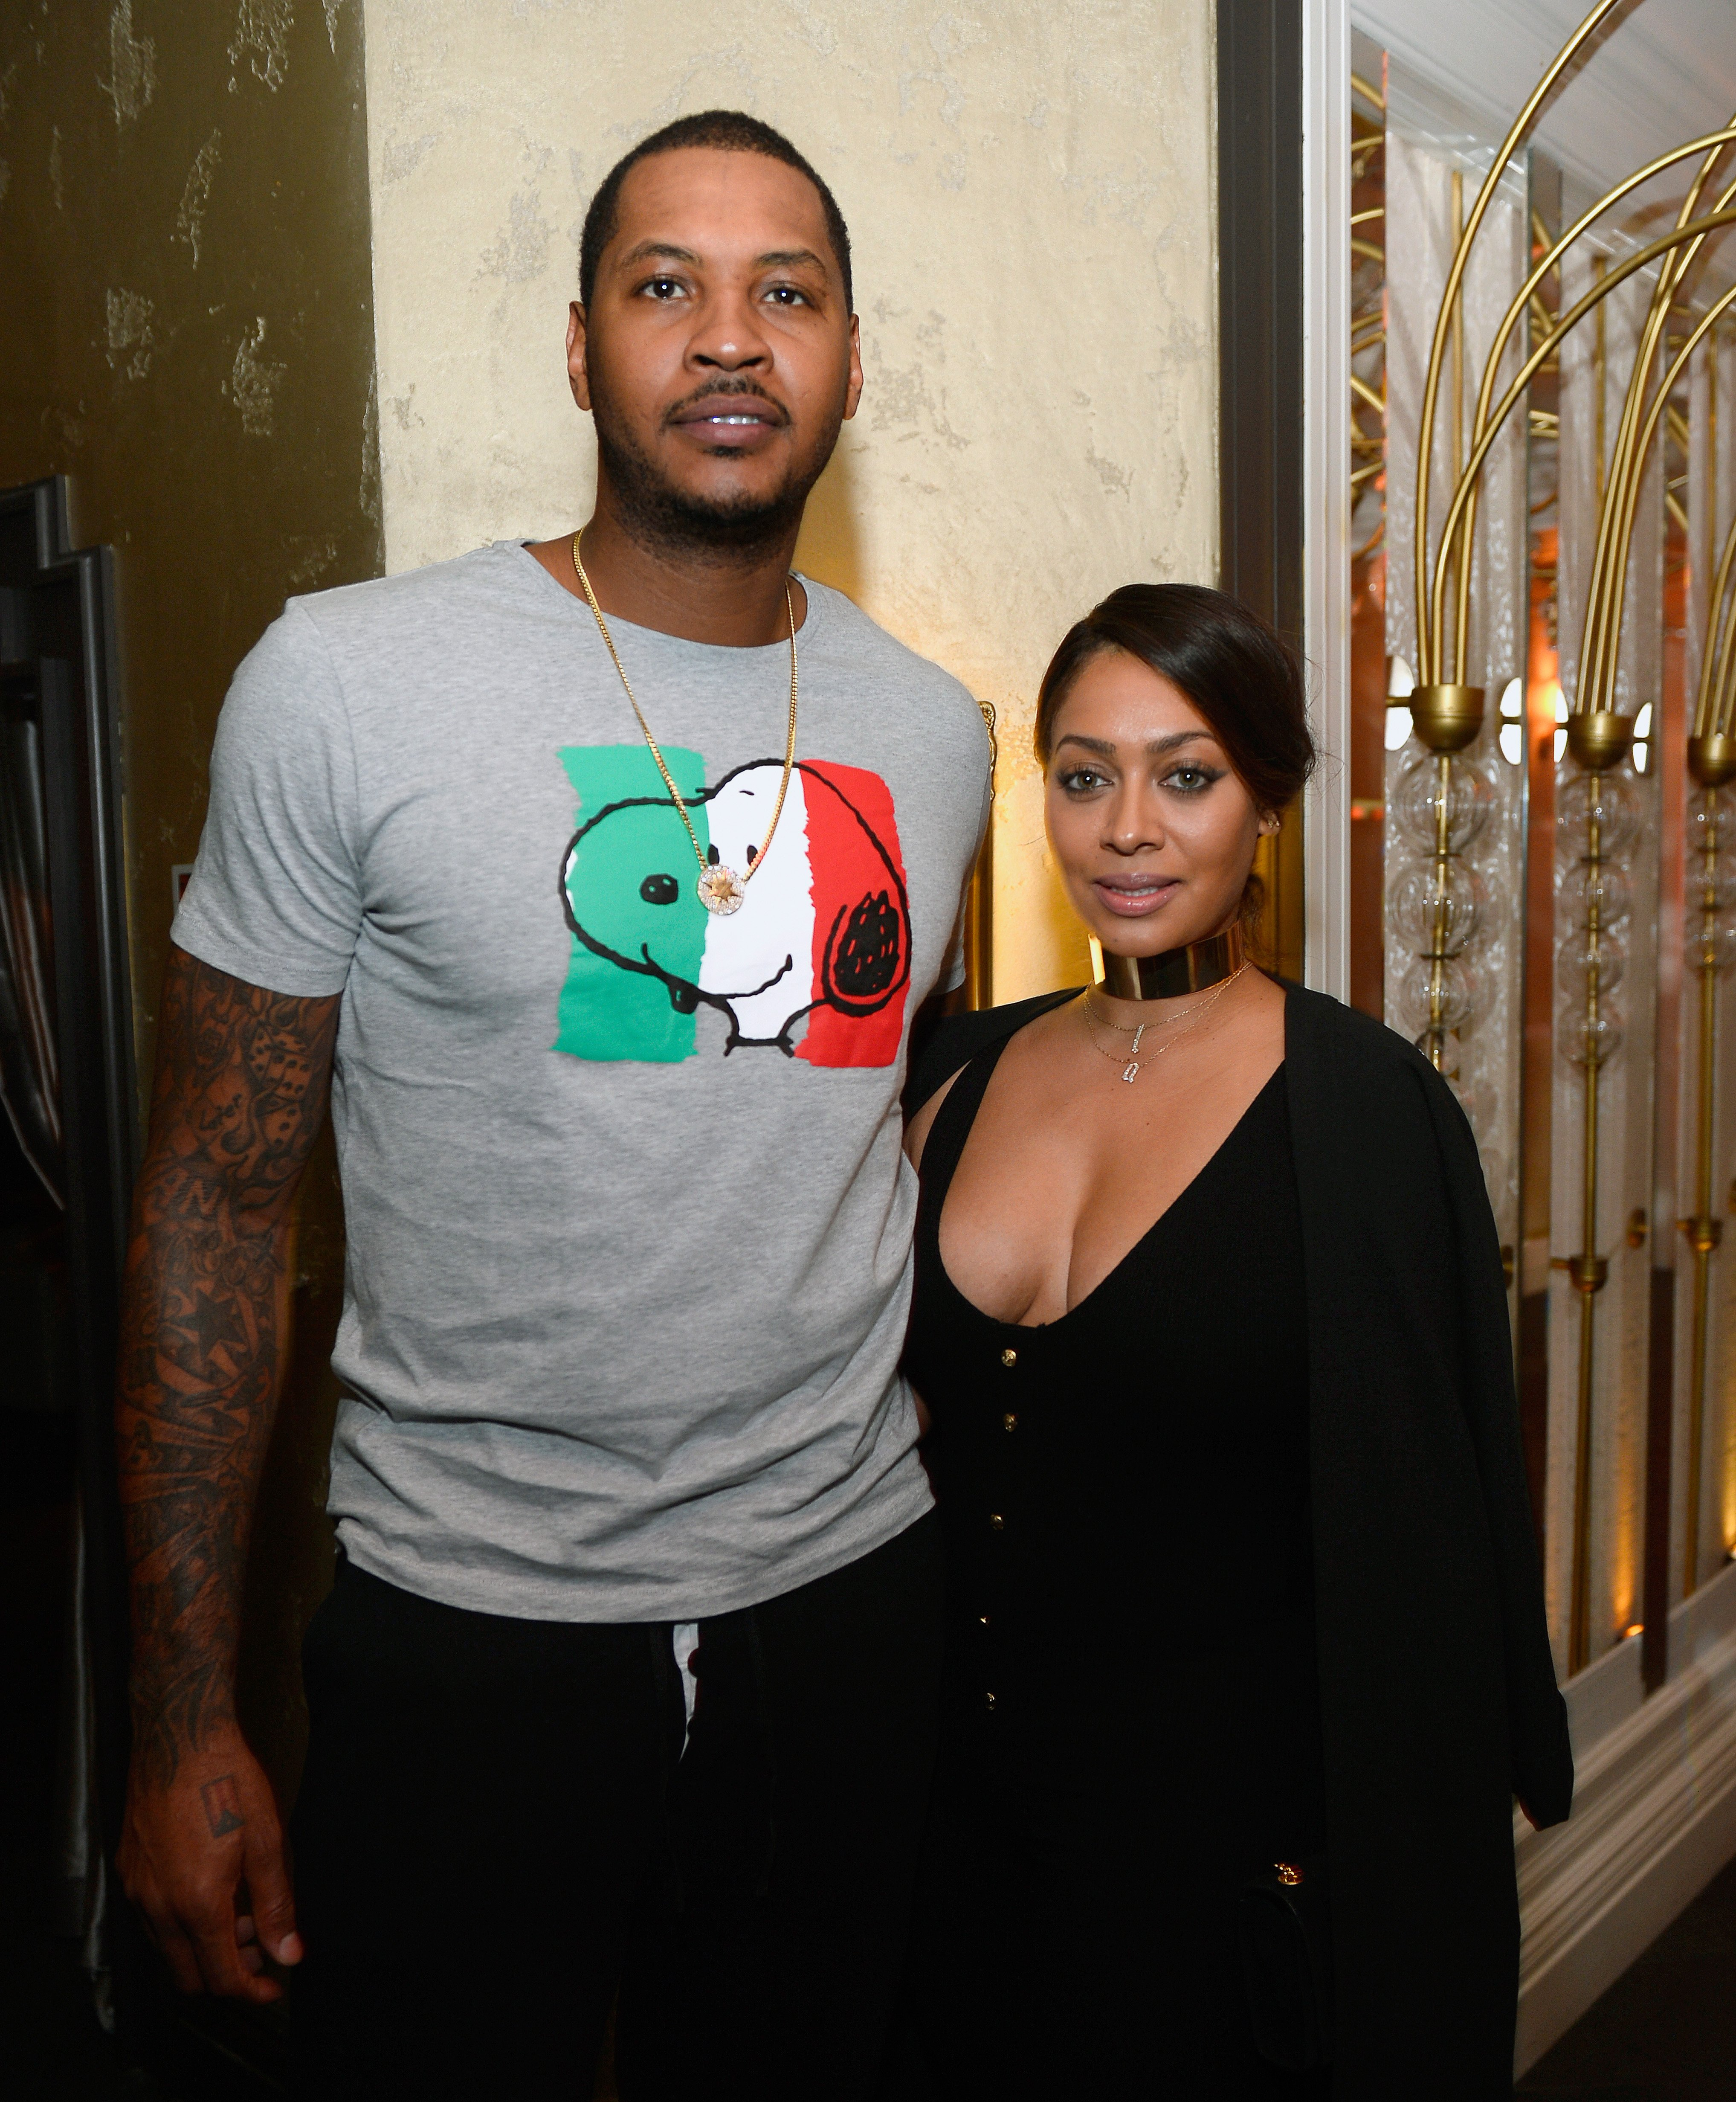 Carmelo Anthony and La La Anthony celebrating Team USA at BEAUTY & Essex in Las Vegas in July 2016. |  Photo: Getty Images